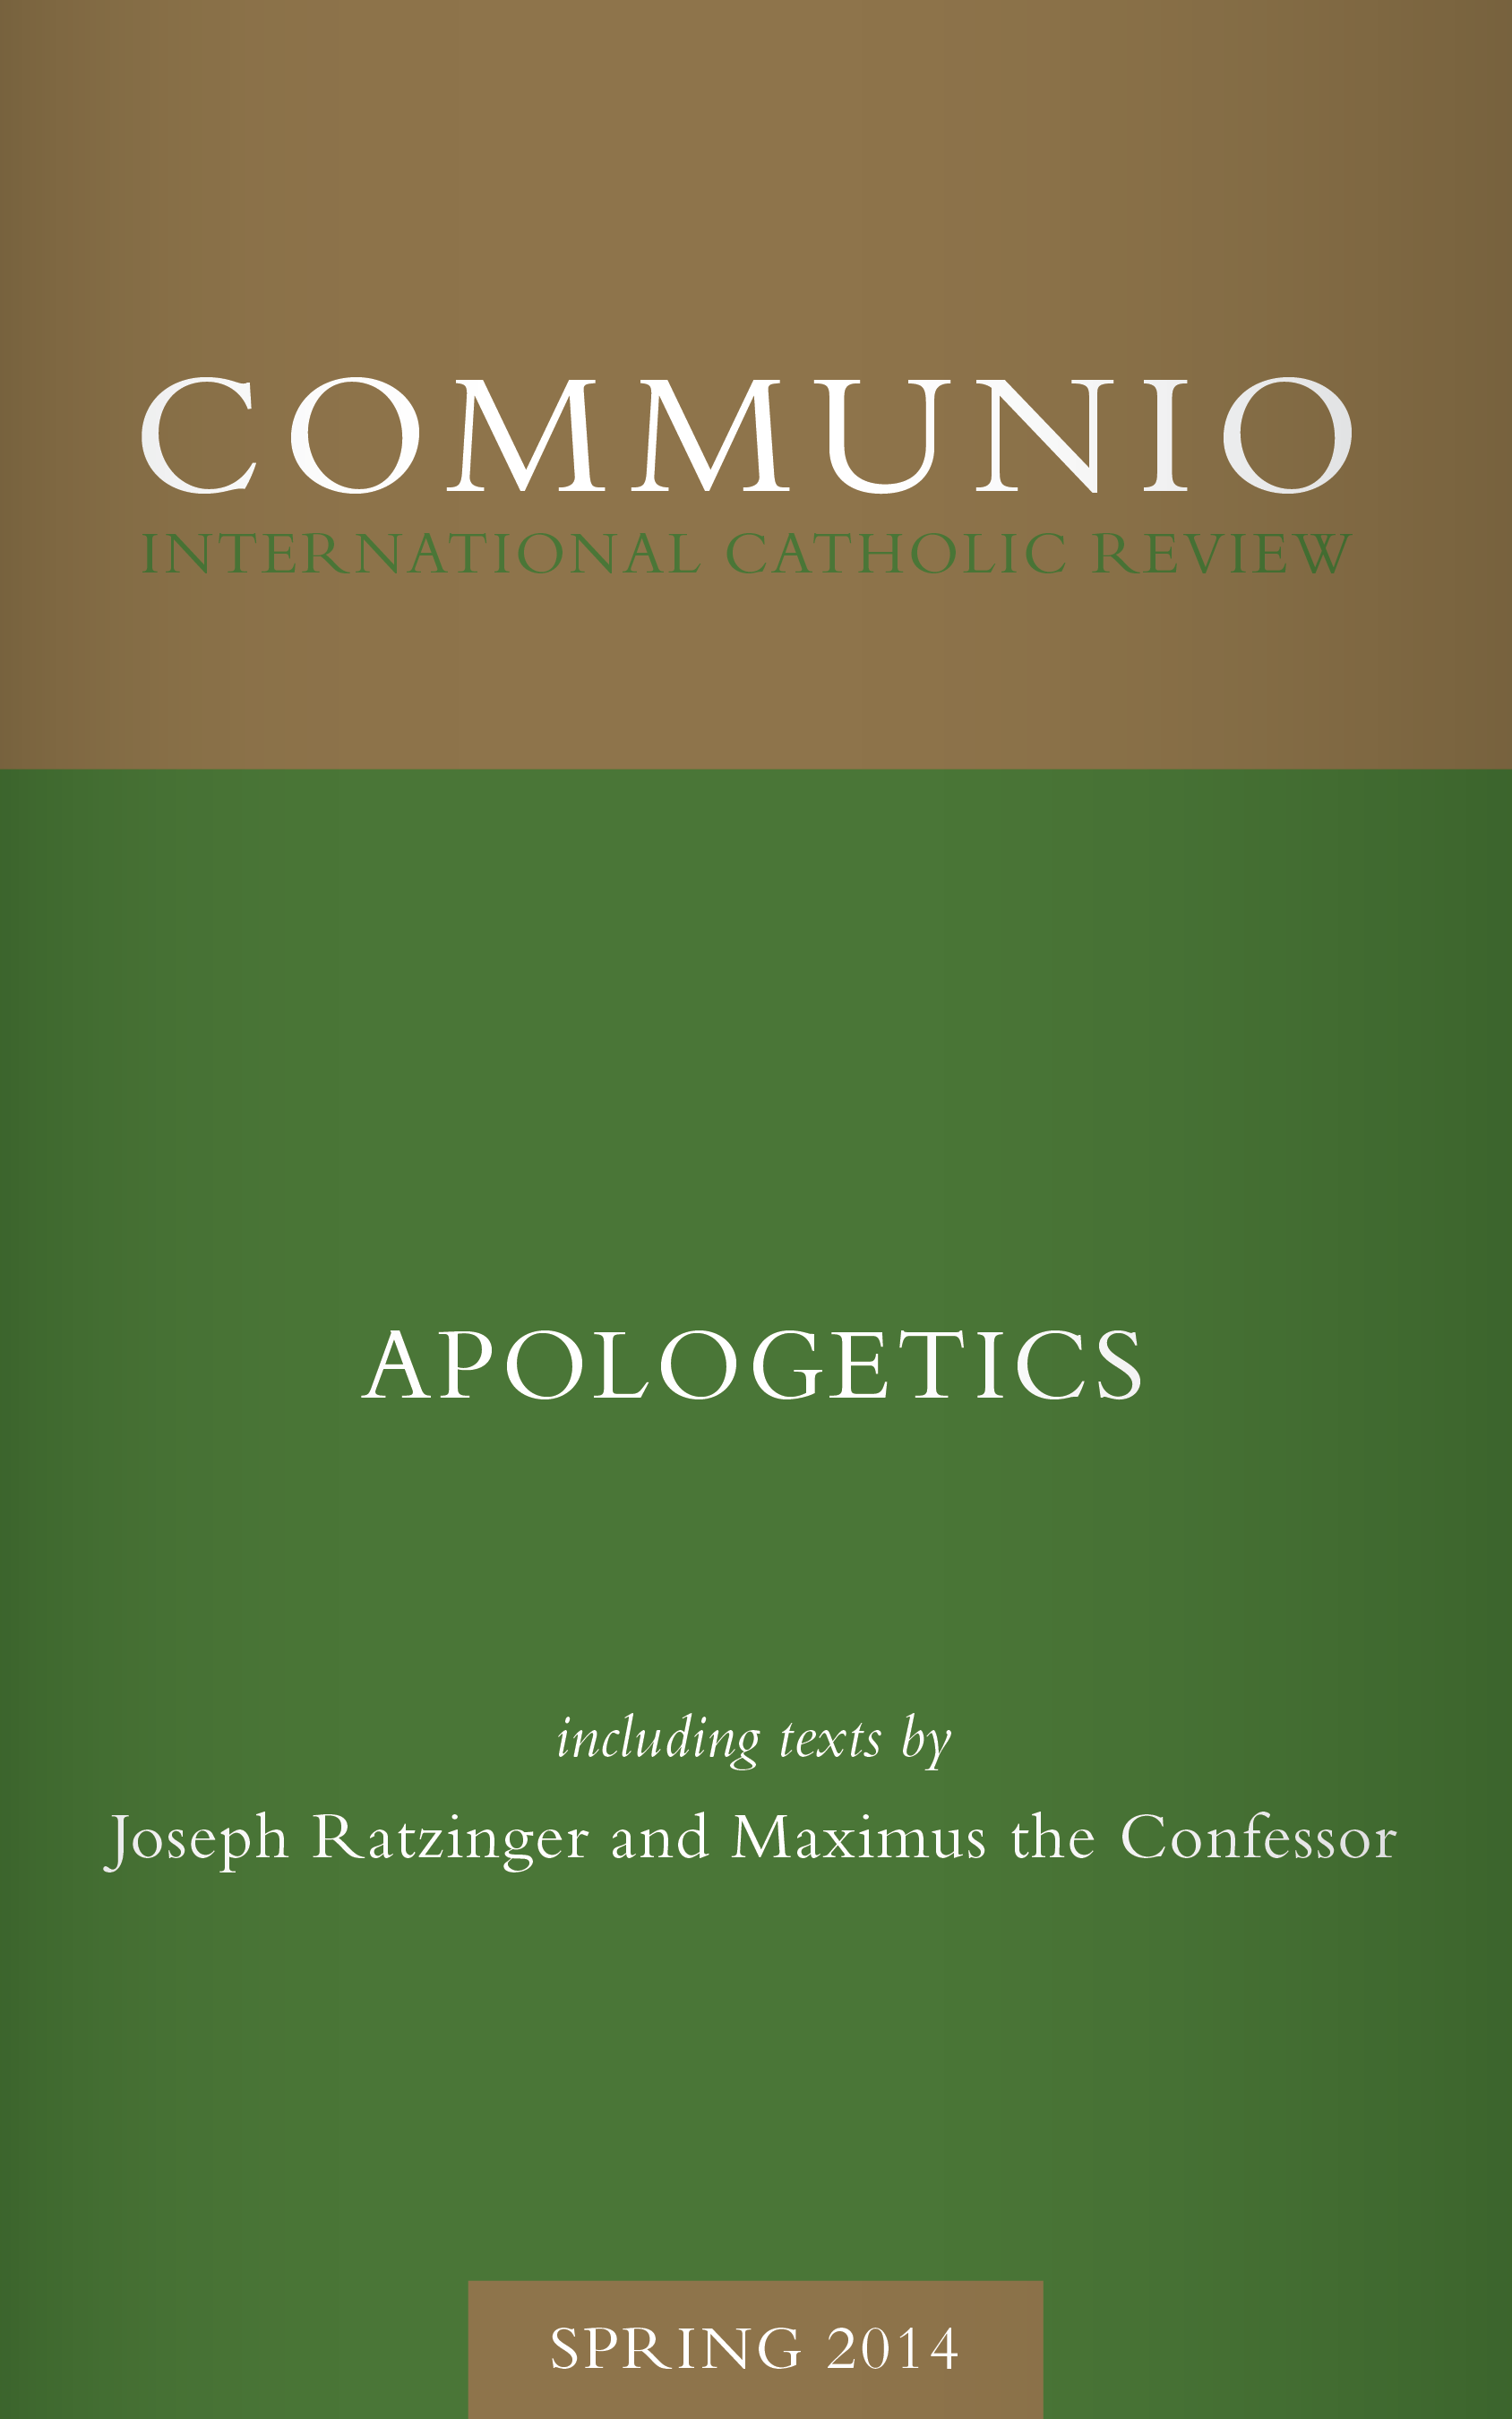 Communio - Spring 2014 - Apologetics